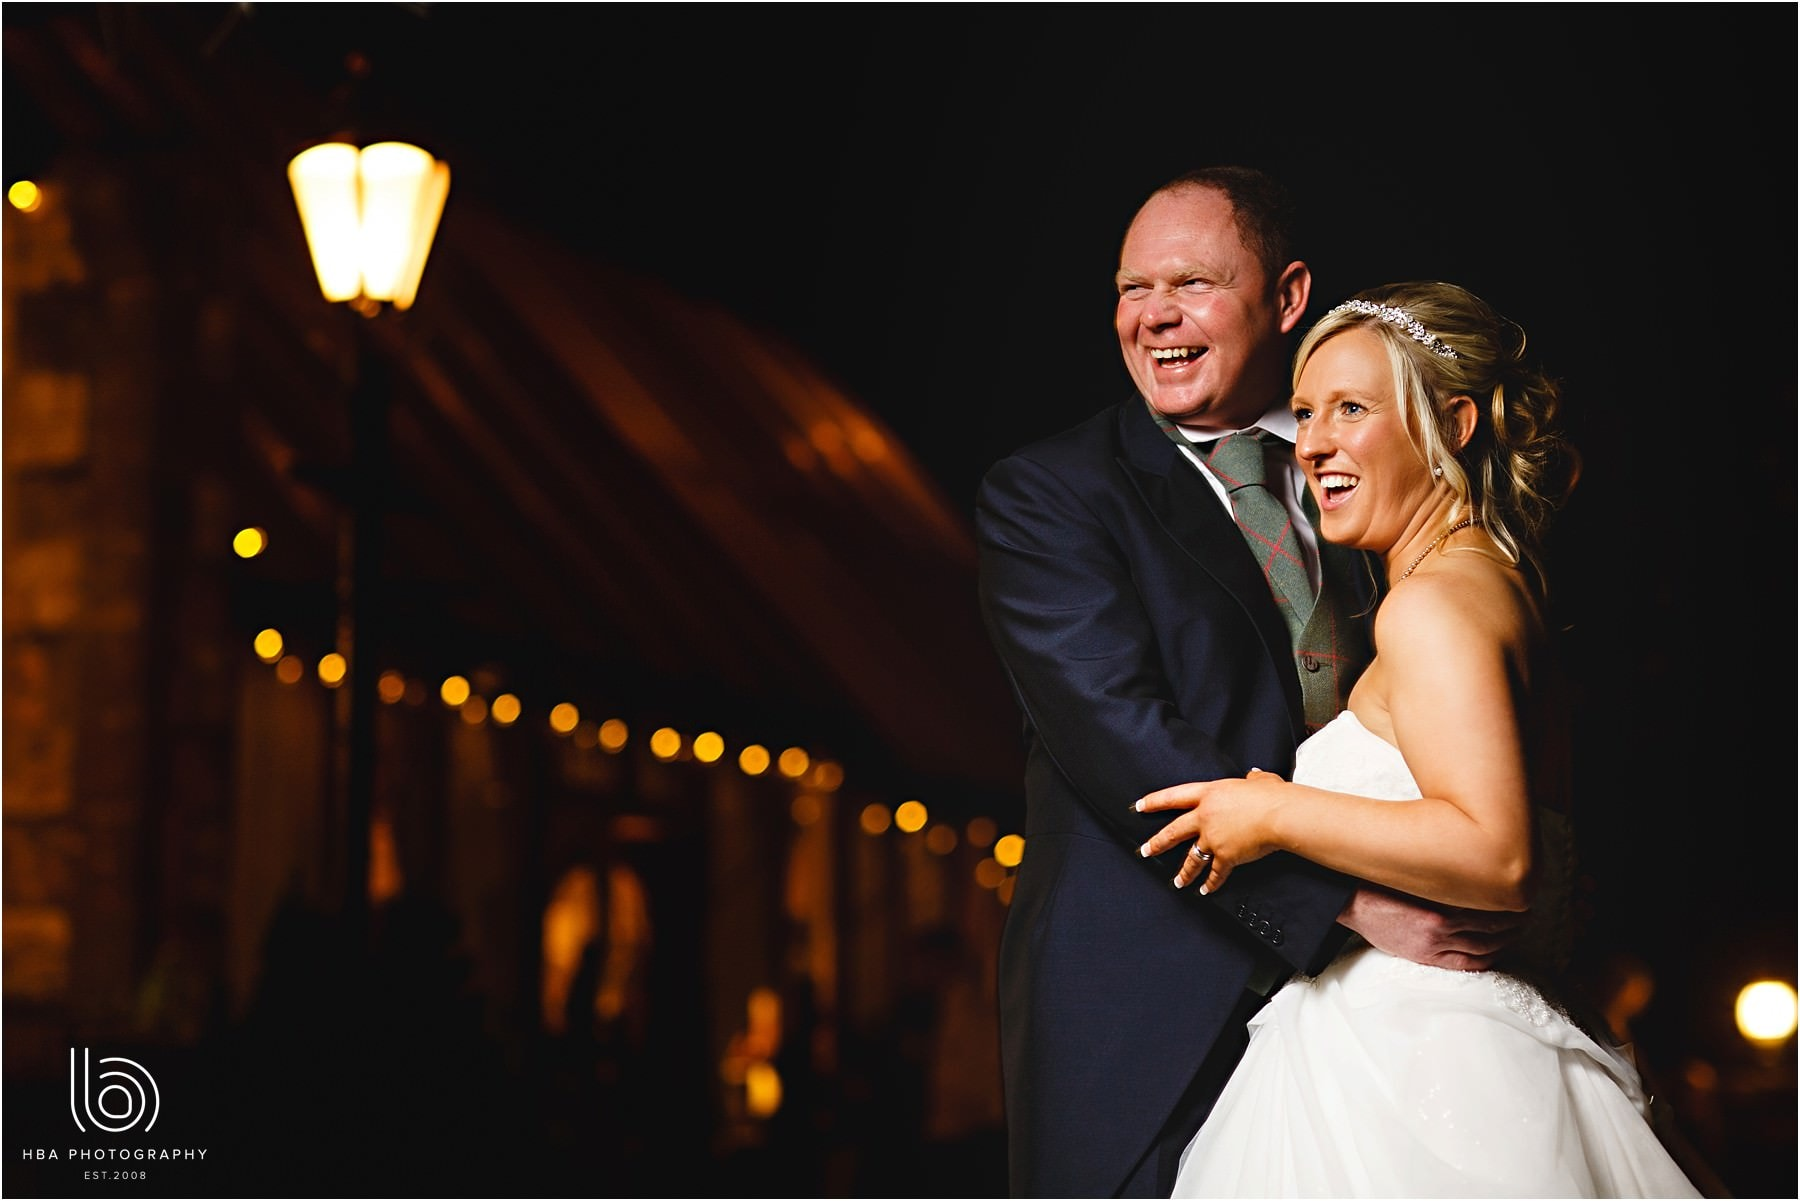 The bride and groom outside at night surrounded by orange lights